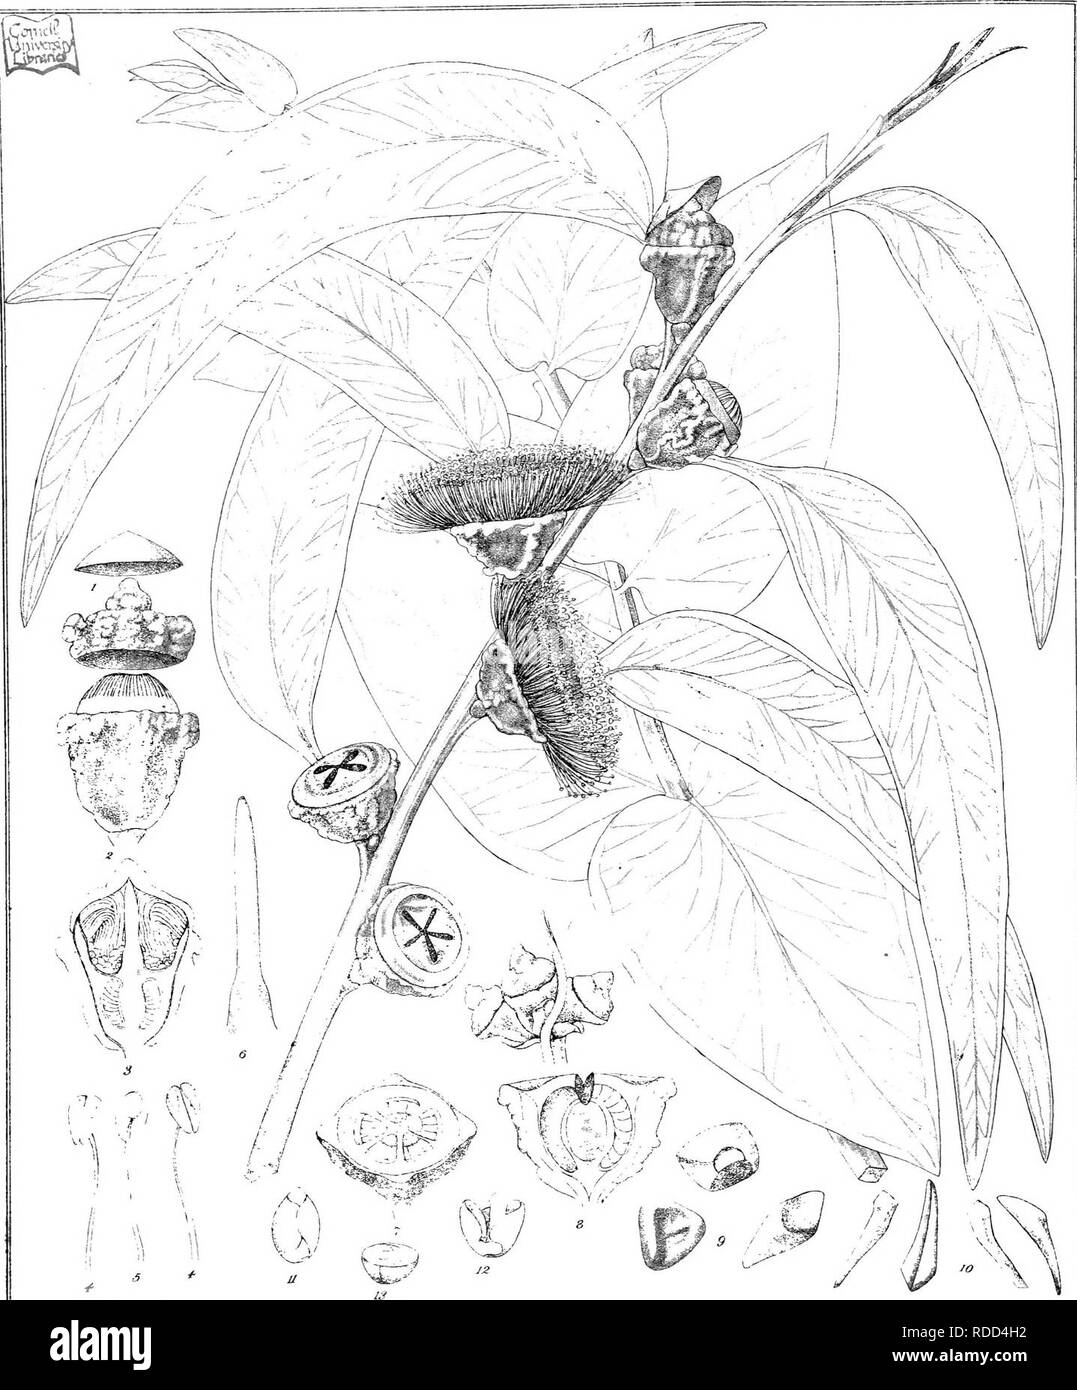 . Eucalyptographia. A descriptive atlas of the eucalypts of Australia and the adjoining islands;. Eucalyptus; Botany. Ttd'c -A. C7r-fie:>^ C'L:i}. Sl;eam Litki Got P^mtag Office Meli) 3^(g|]3:y|tei §3.(s)!£)iIli^o /^. Please note that these images are extracted from scanned page images that may have been digitally enhanced for readability - coloration and appearance of these illustrations may not perfectly resemble the original work.. Mueller, Ferdinand von, 1825-1896. Melbourne, J. Ferres, Govt. Print; [etc. ,etc. ] - Stock Image